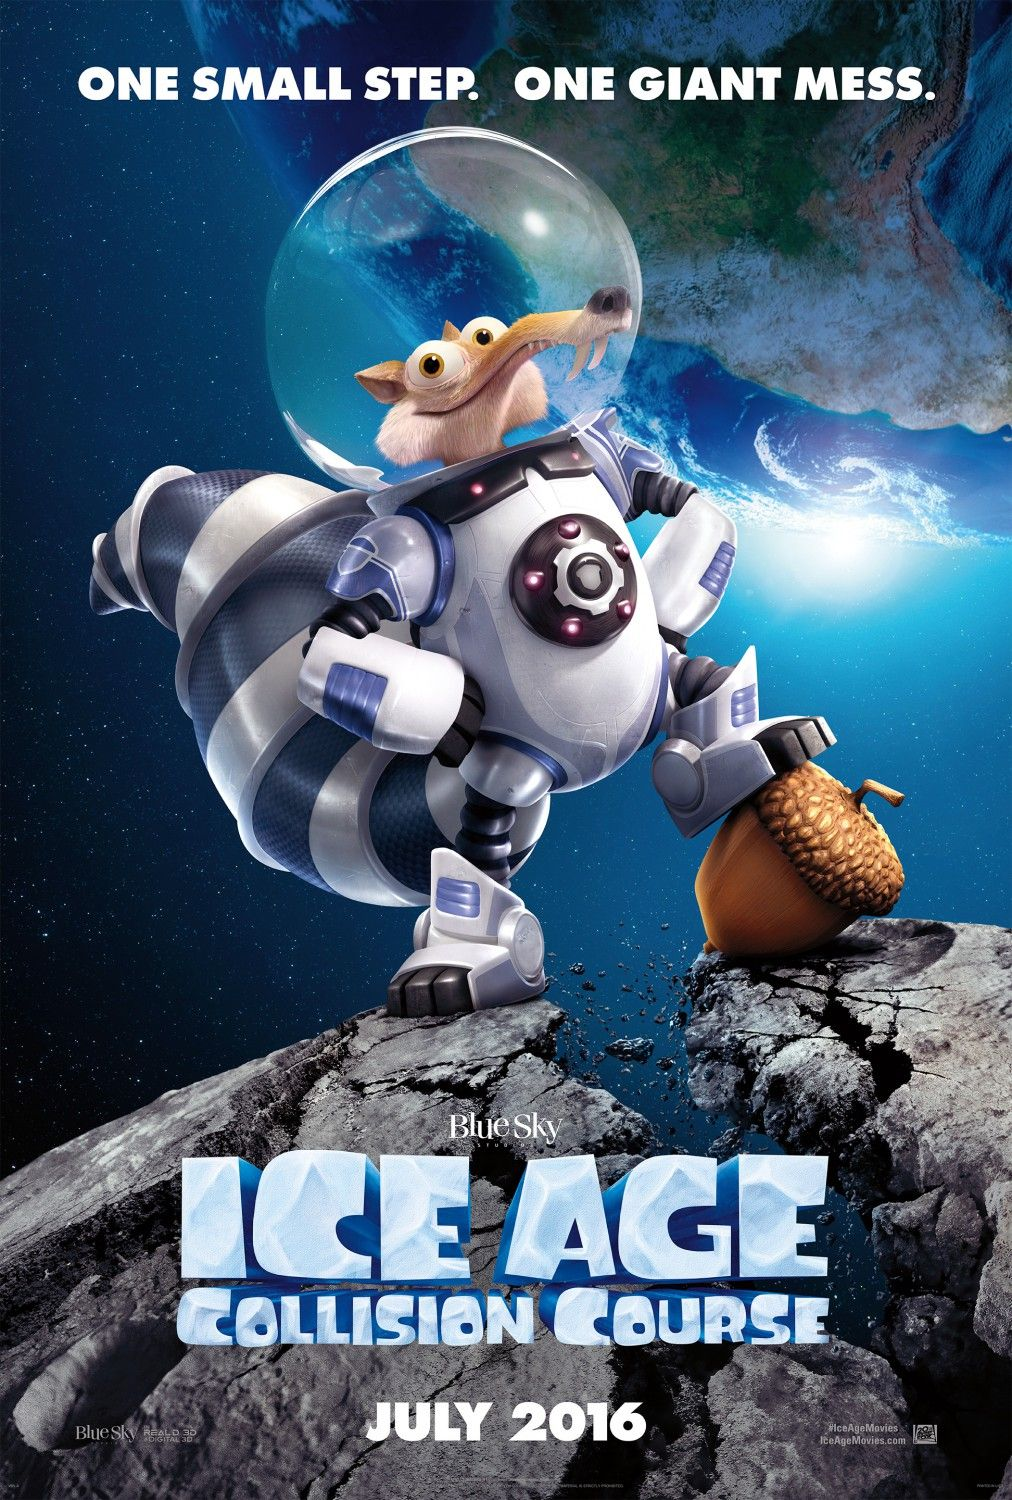 Get Tickets To An Early Screening Of Ice Age Collision Course In Slc On July 16th Iceage Collisioncourse Ice Age Collision Course Ice Age Collision Course